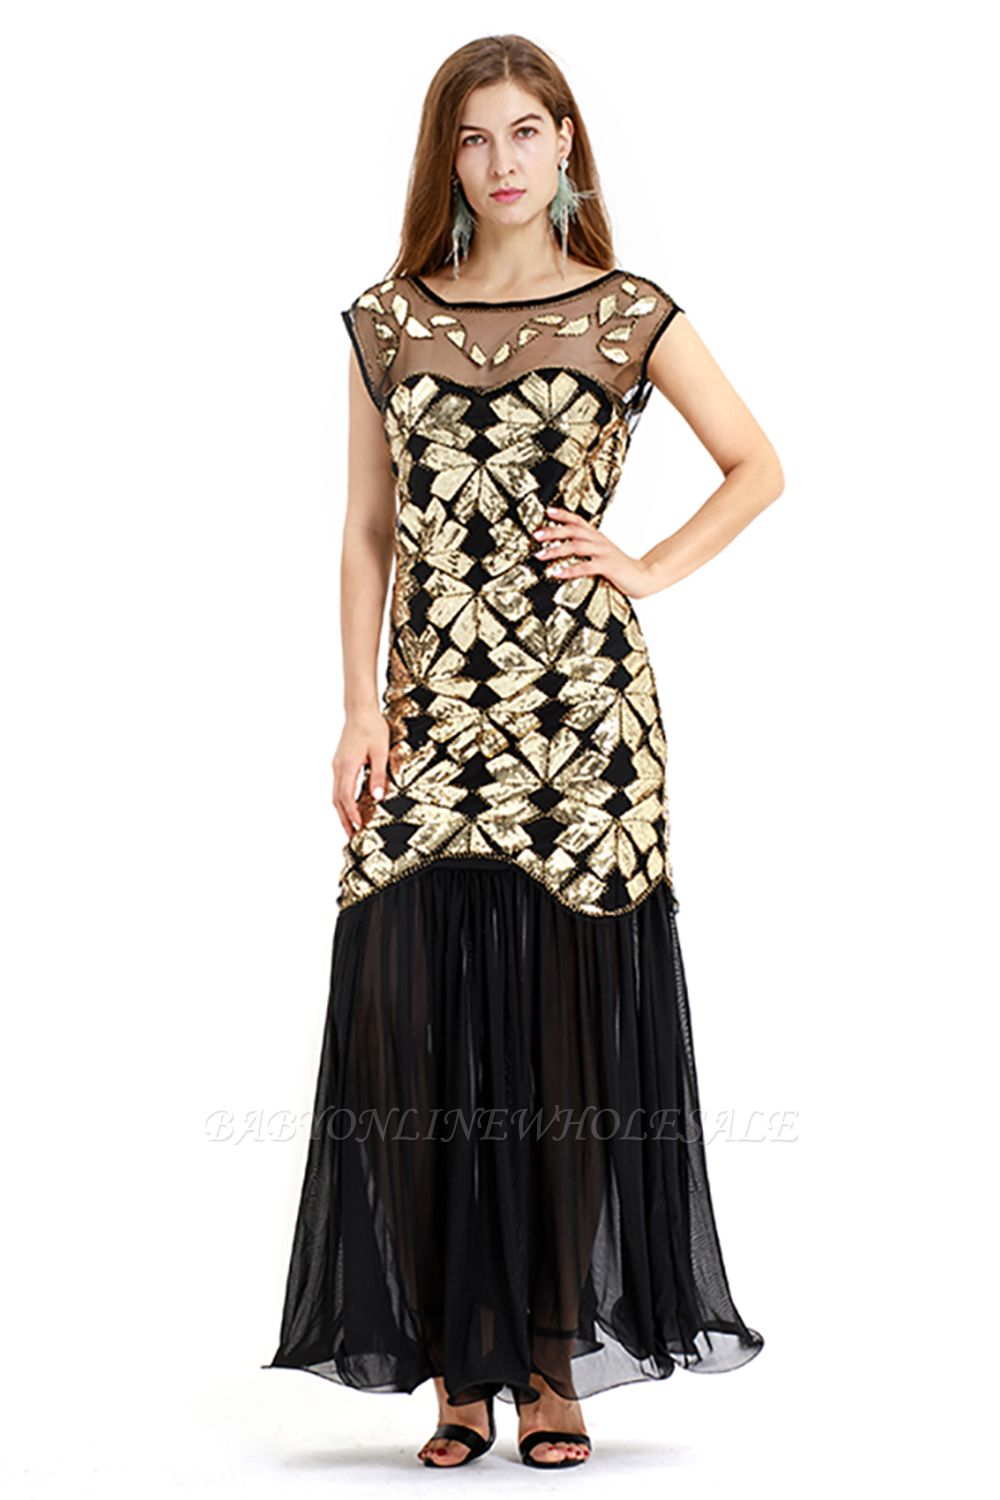 Beautiful Cap sleeves Long Black Cocktail Dresses | Shining Sequined Dress